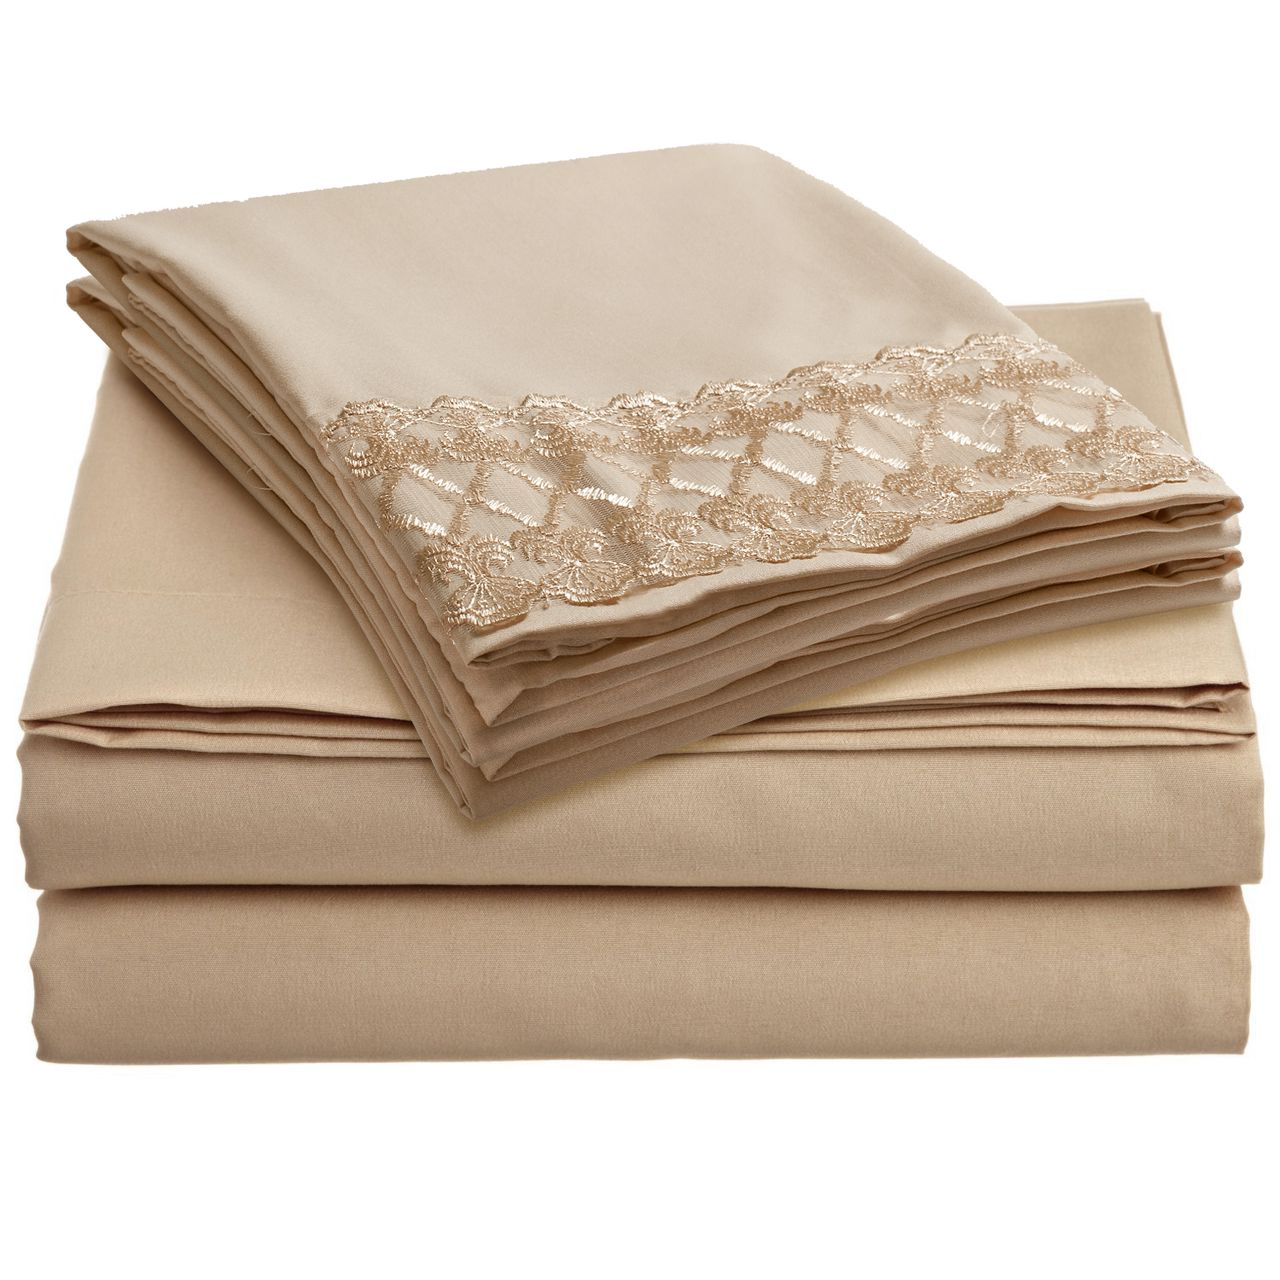 Shop our selection of Queen, Bed Sheets, Pillowcases & Shams in the Decor Department at The Home Depot.